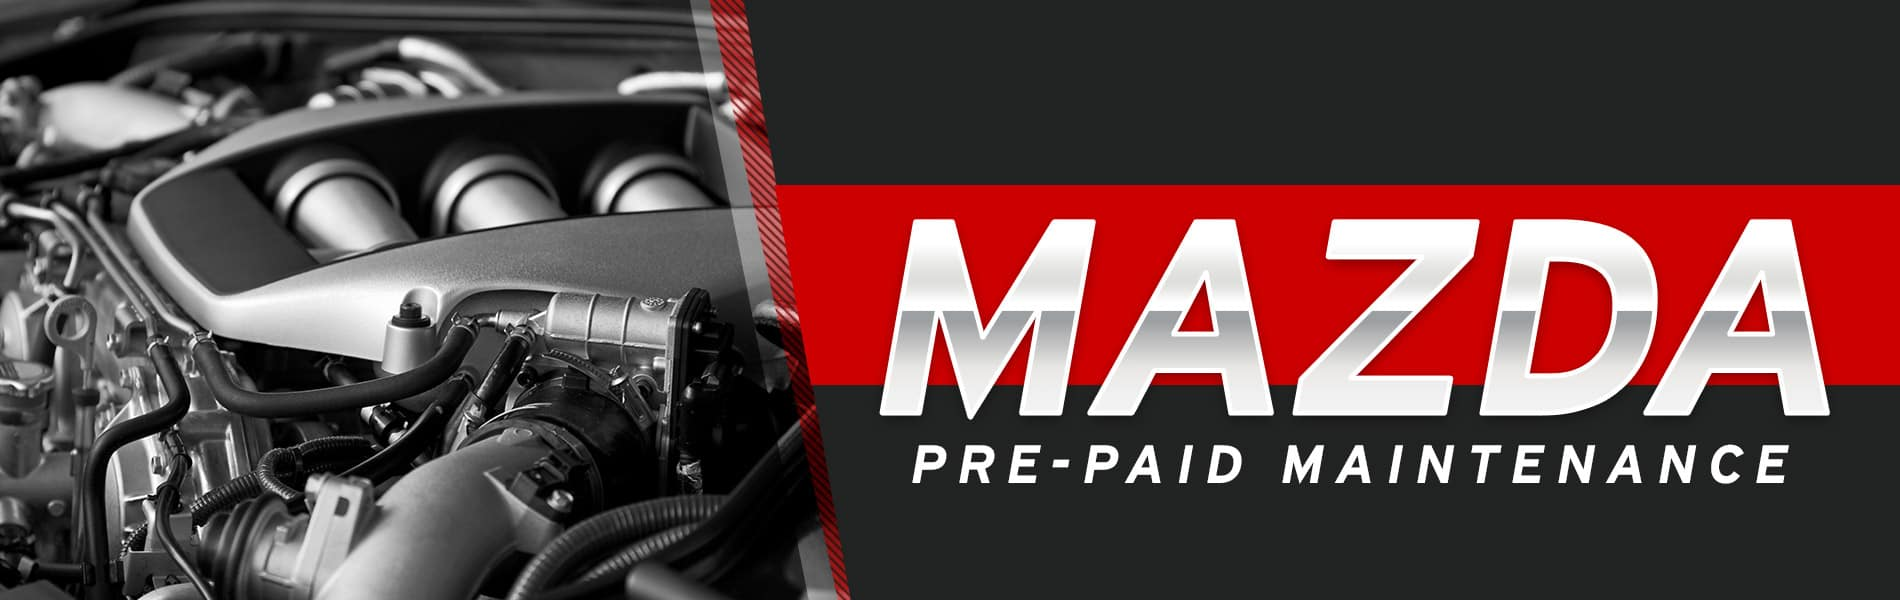 Consider adding a Mazda pre-paid maintenance plan to your vehicle at Mazda of Bedford